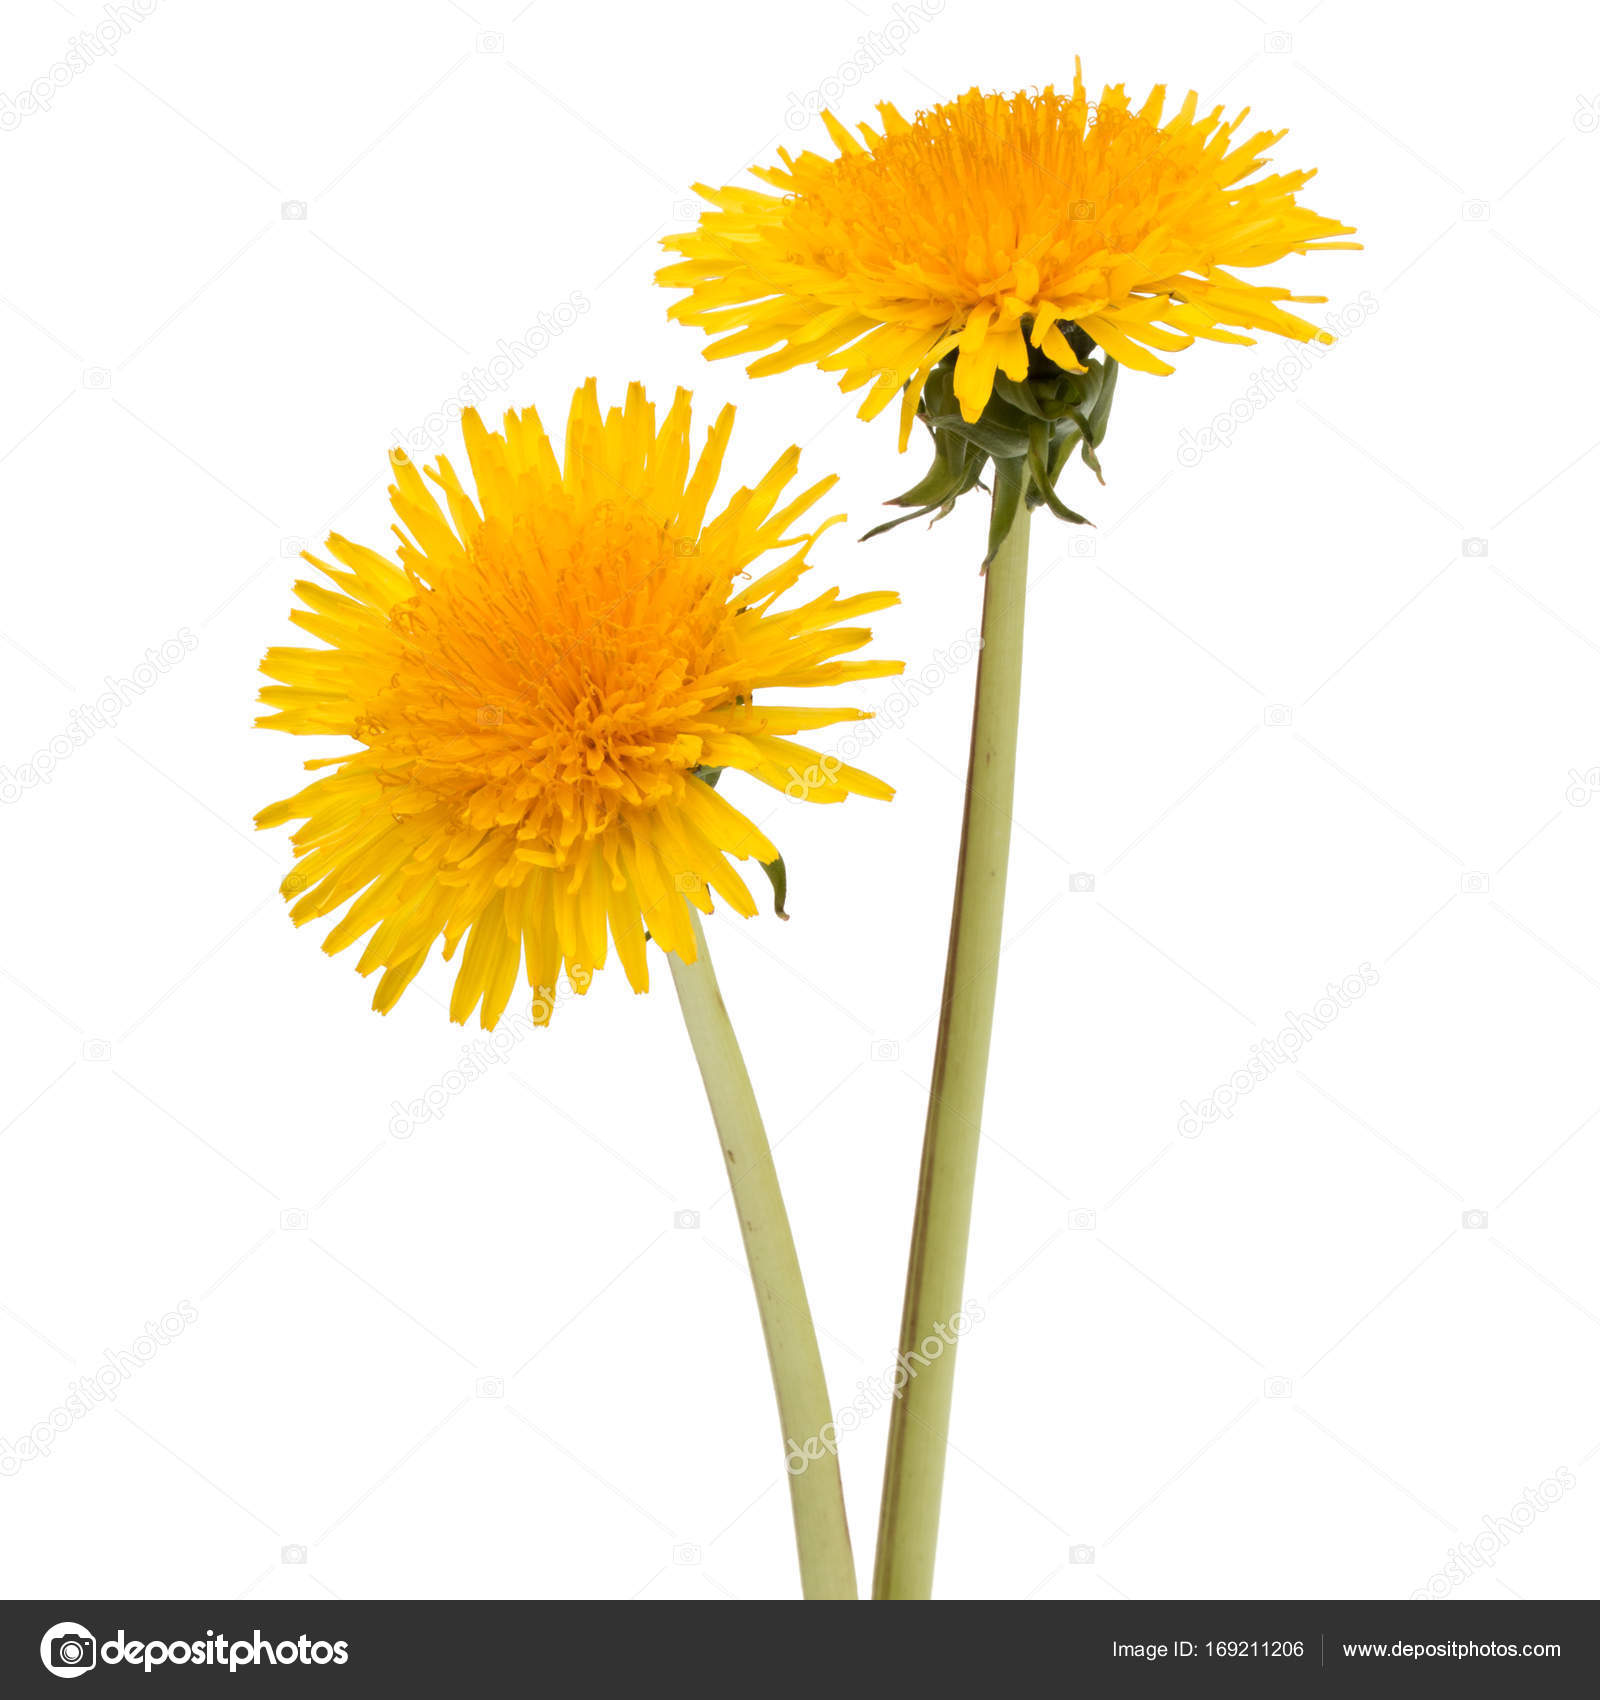 Fresh dandelion flowers stock photo natika 169211206 fresh dandelion flowers isolated on white background cutout photo by natika mightylinksfo